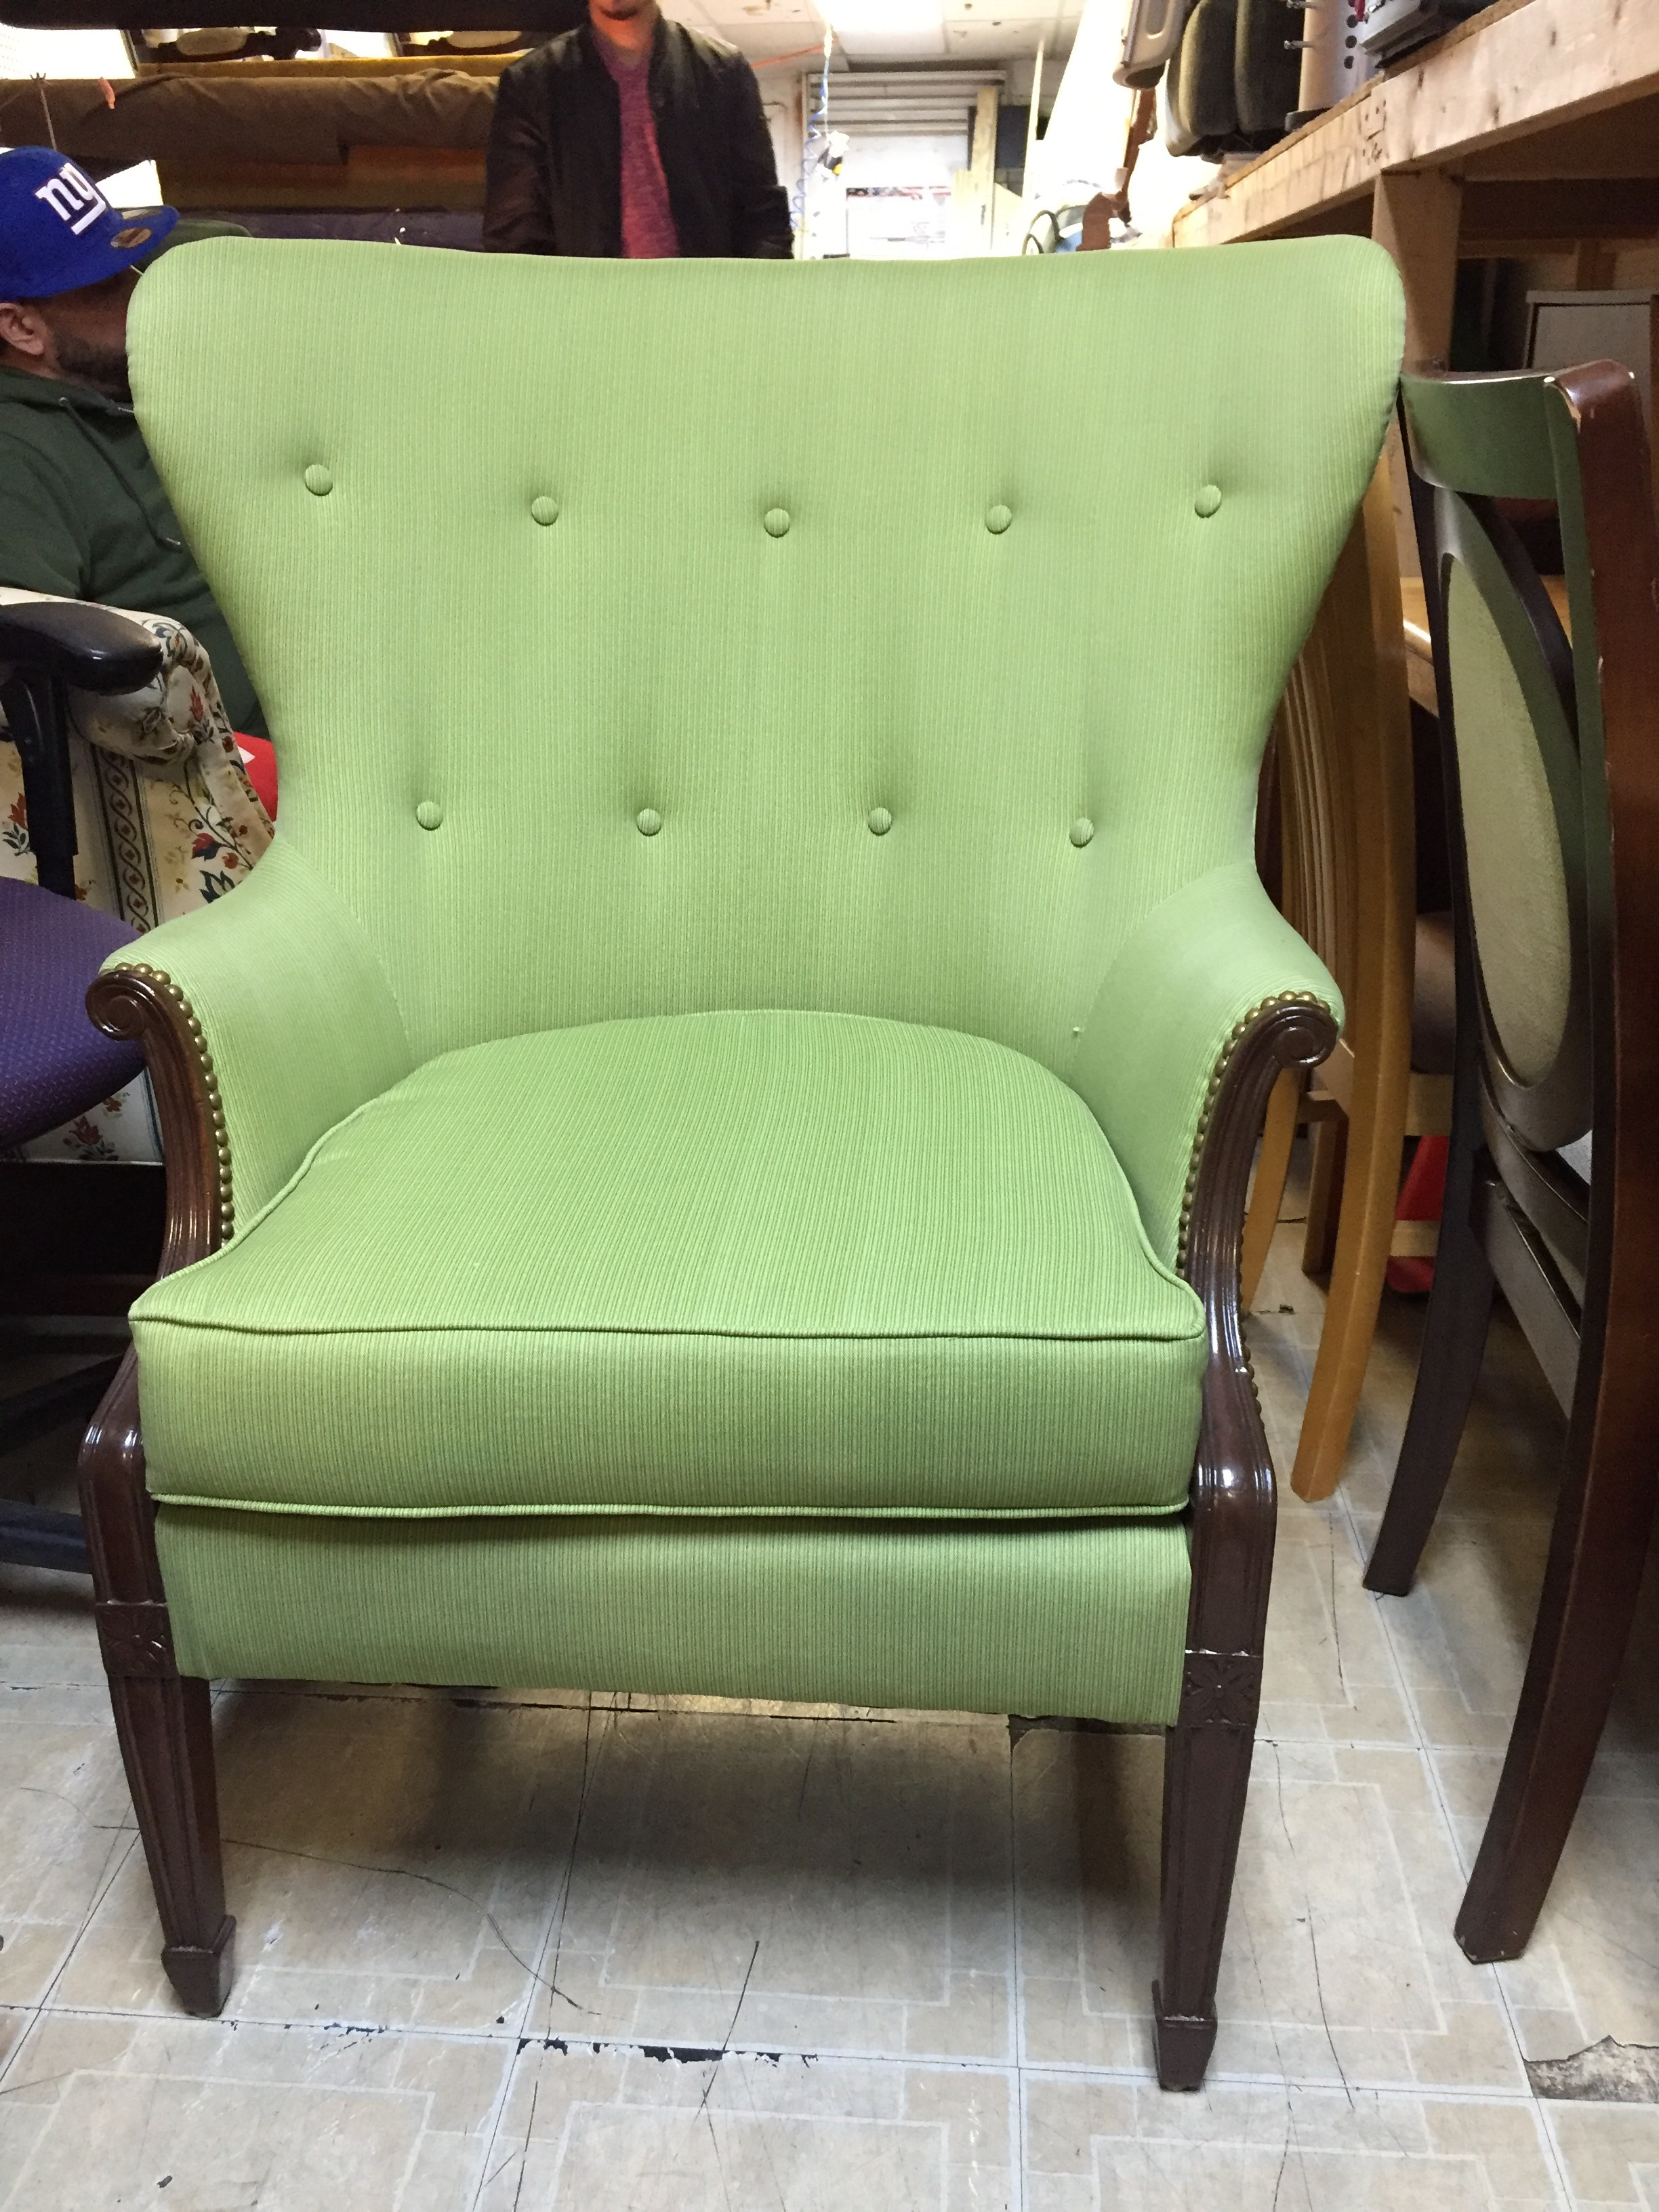 Gorgeous mod wing back in spring green upholstery.  This has been fully restored by my beloved upholsterer.  It is an amazing queen throne and the perfect accent for your  maximalist decor.  You can work this into bohemian, jungalow and midcentury decors.  I see it with some amazing jungle walls........